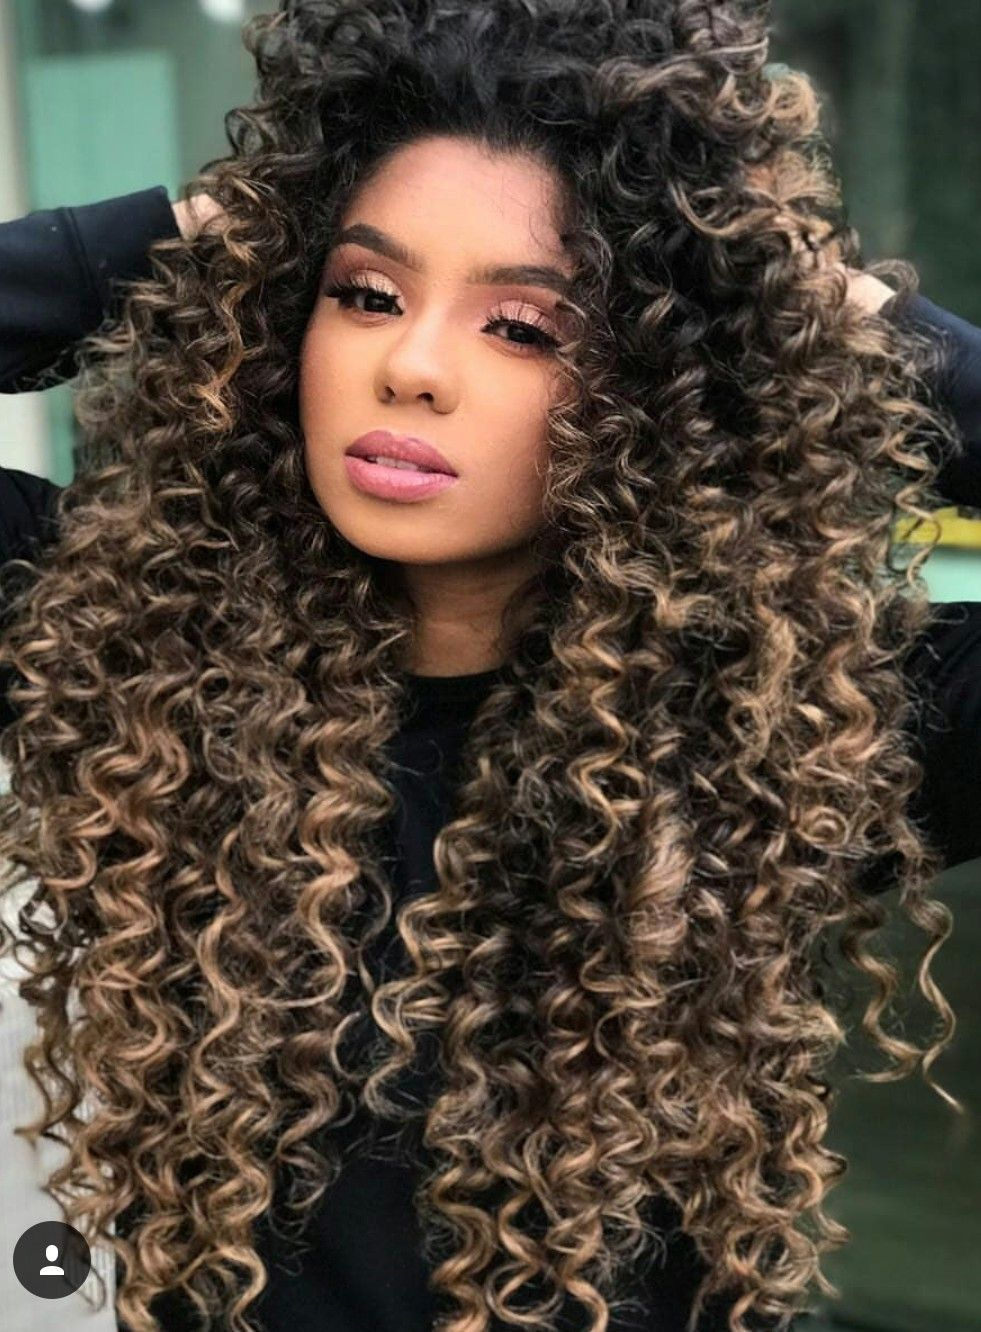 pin by denise carter on long kutz in 2019 | curly hair